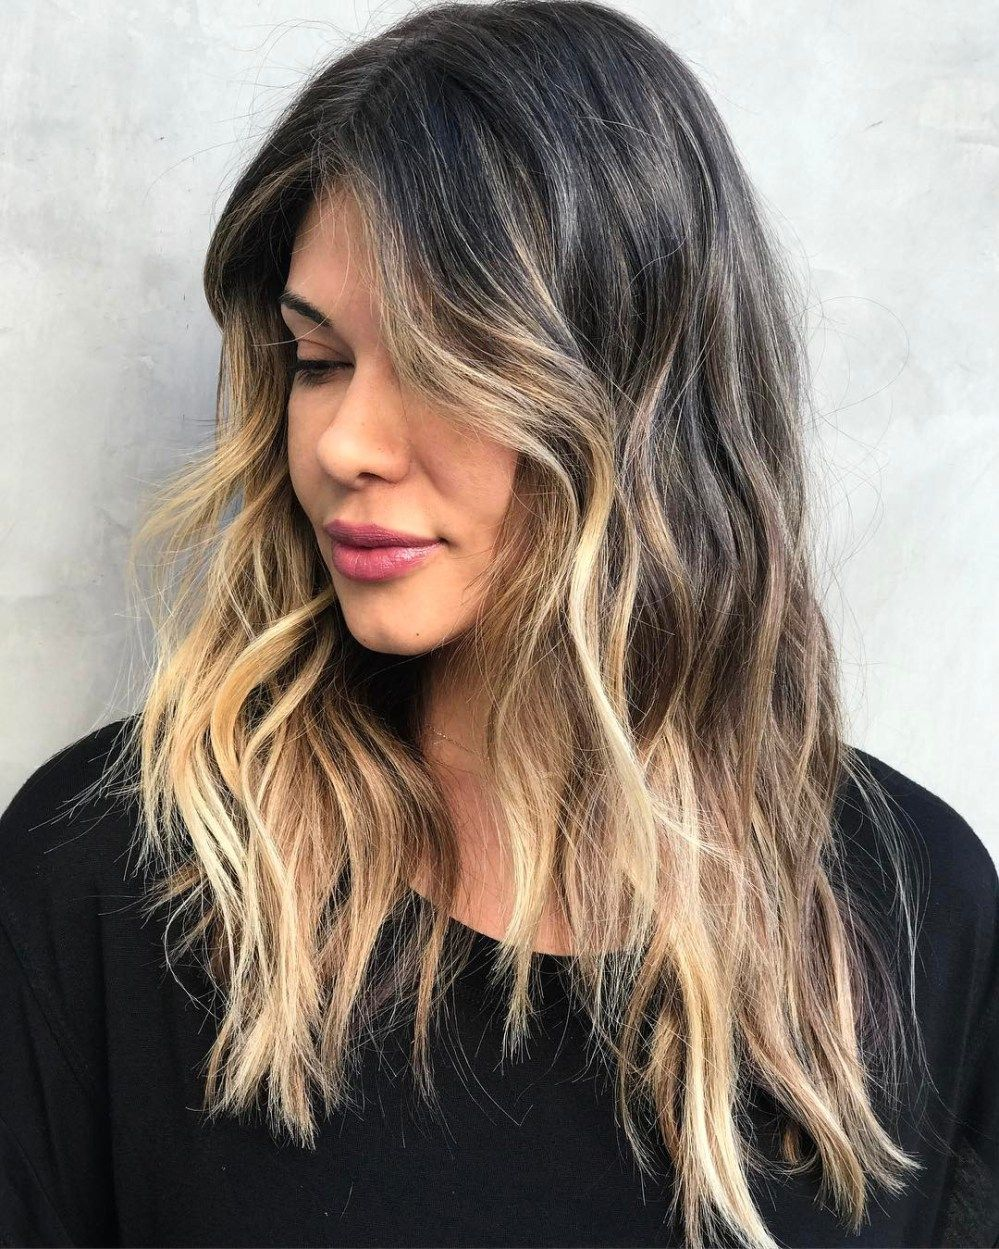 10 Super Chic Hairstyles for Long Faces to Break Up the Length